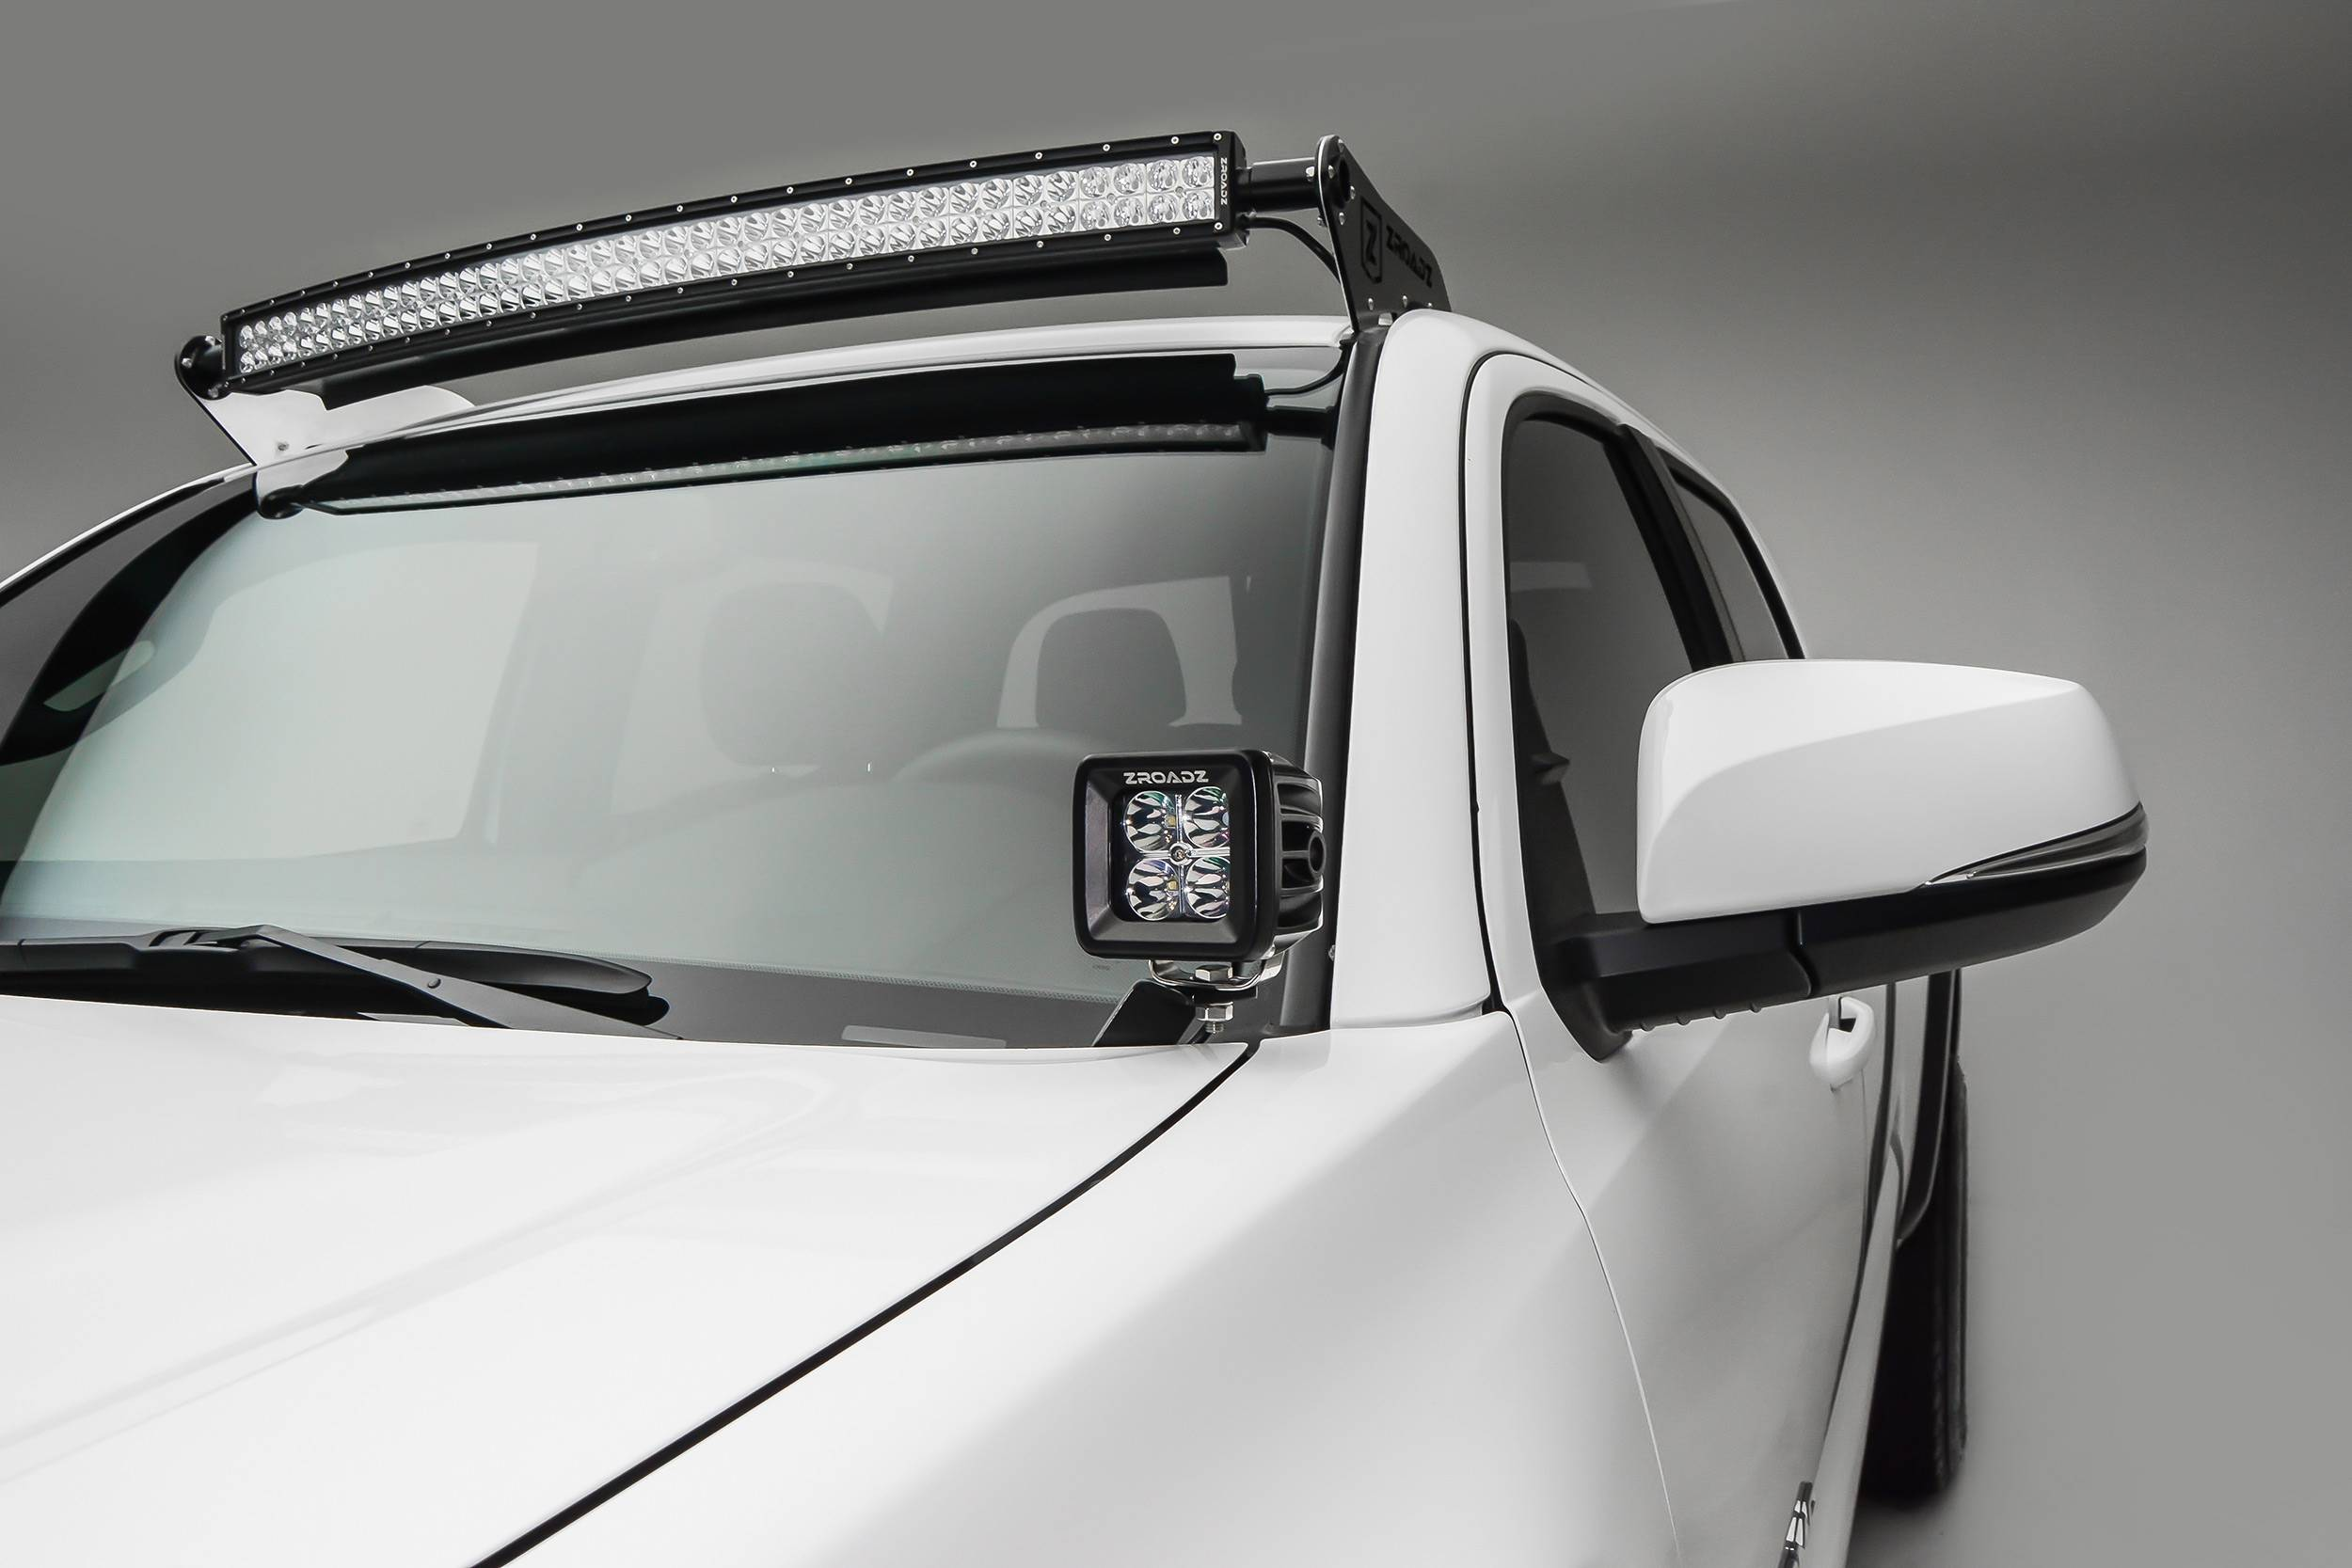 ZROADZ                                             - 2005-2020 Toyota Tacoma Front Roof LED Kit, Incl. 40 Inch LED Curved Double Row Light Bar - PN #Z339401-KIT-C